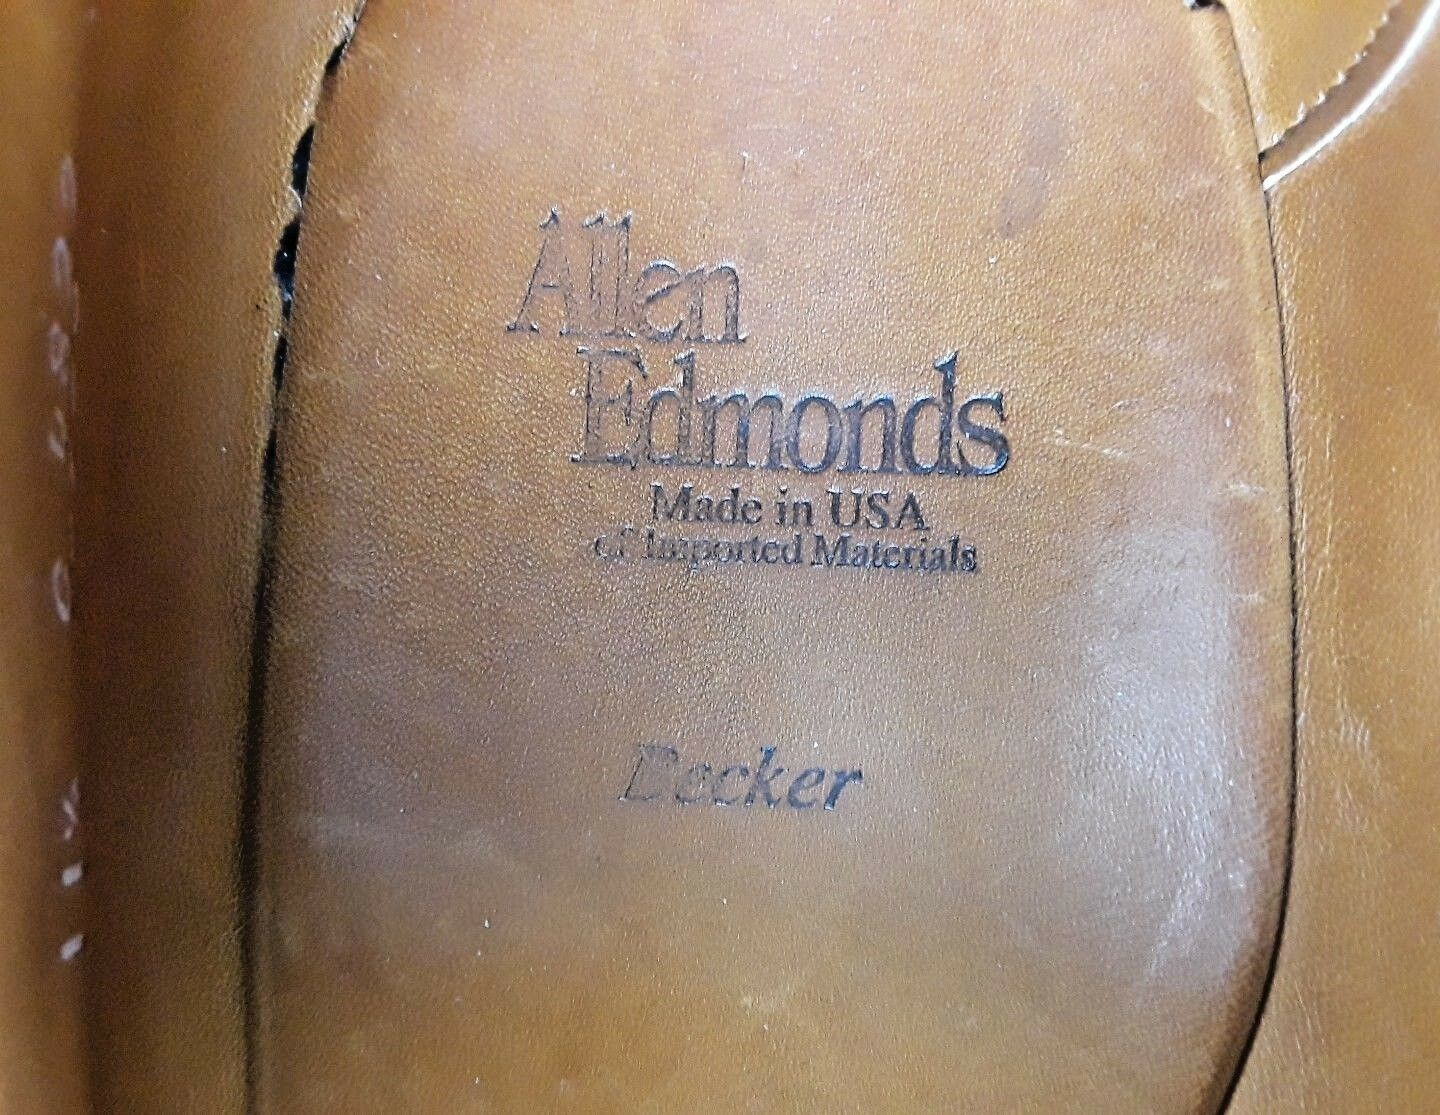 Allen Edmonds Becker Uomo 11.5 C Pelle Pebbled Brown Pelle C Cap Toe Oxford Dress Shoe 7c8eed